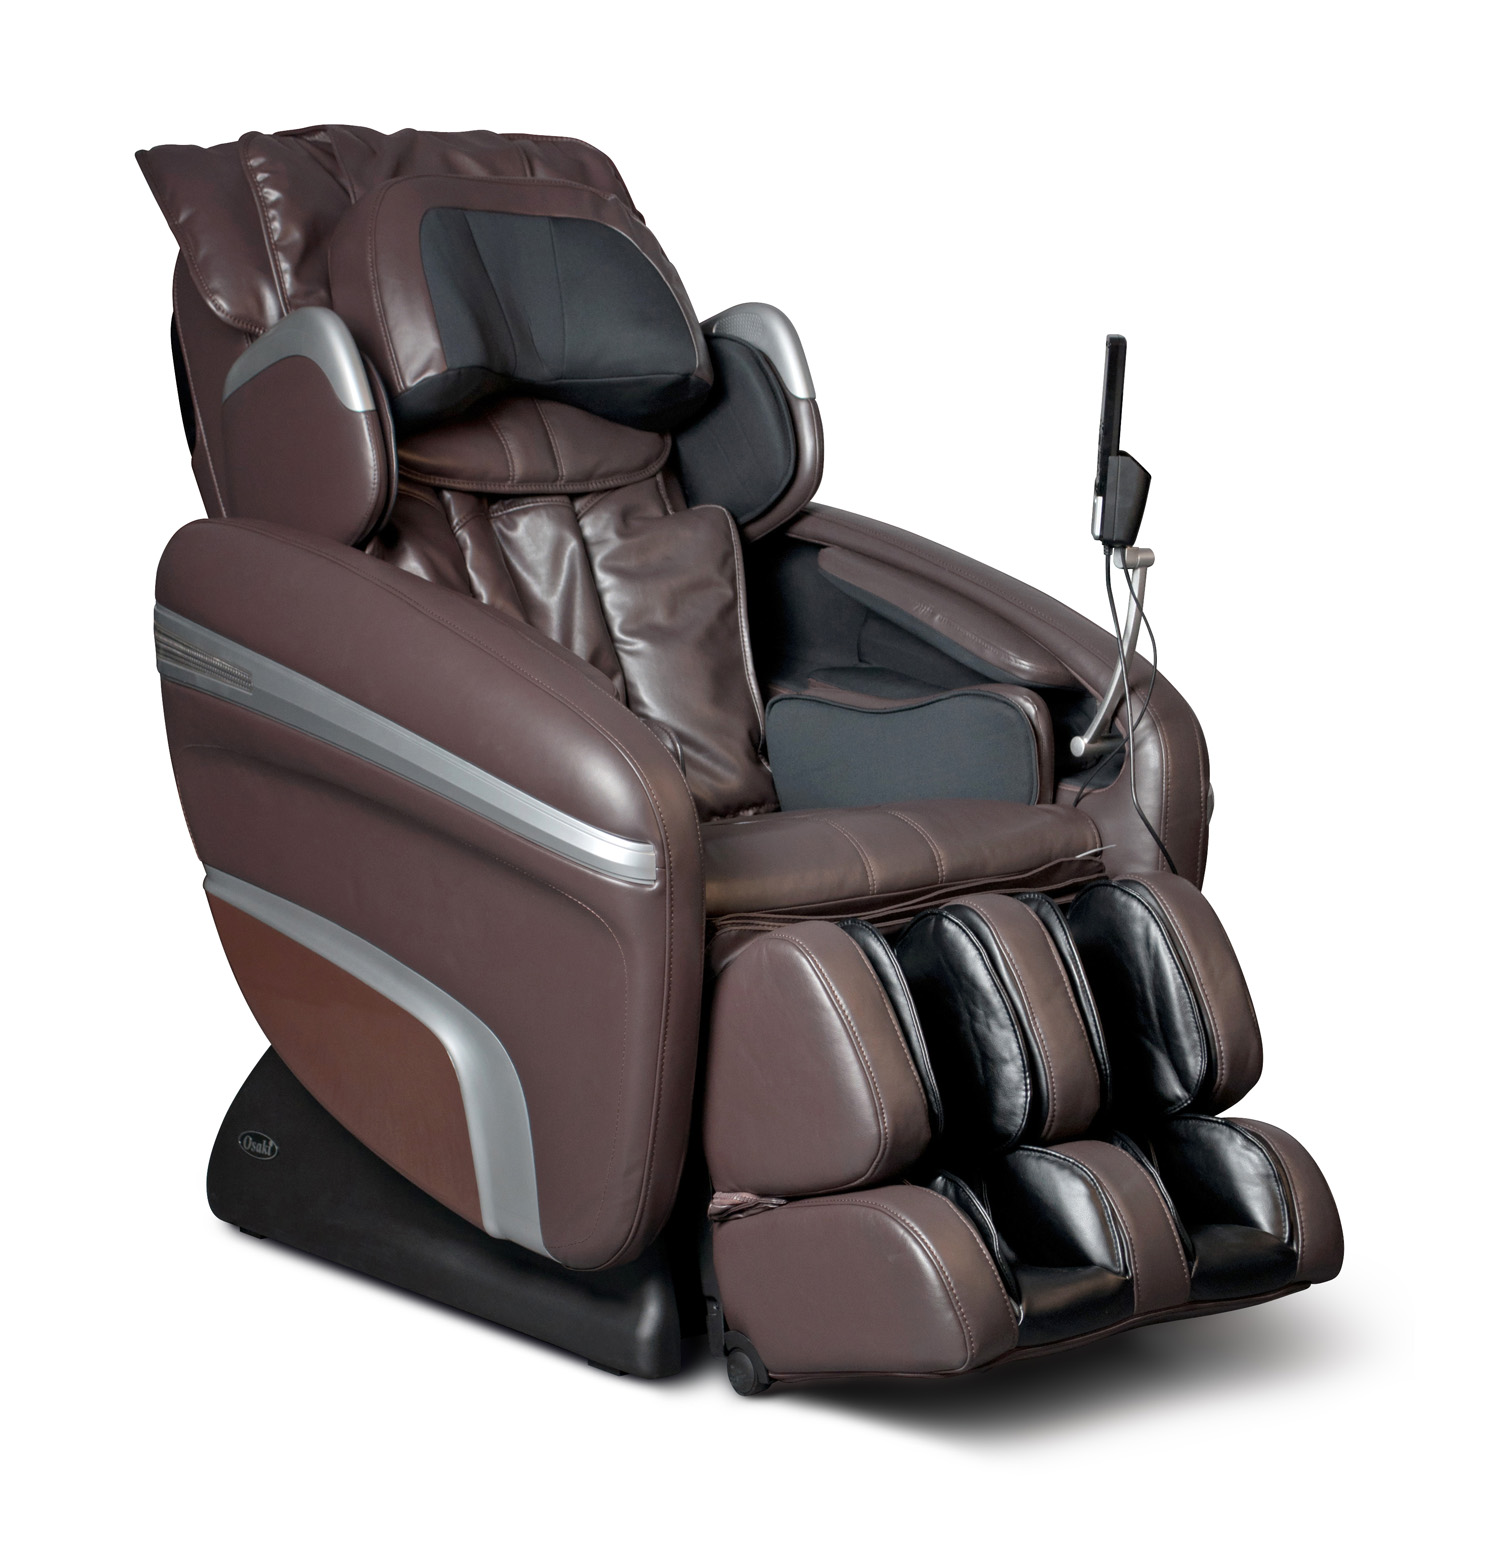 Luraco Massage Chair Massage Chair Relief Introduces The Osaki Os 6000